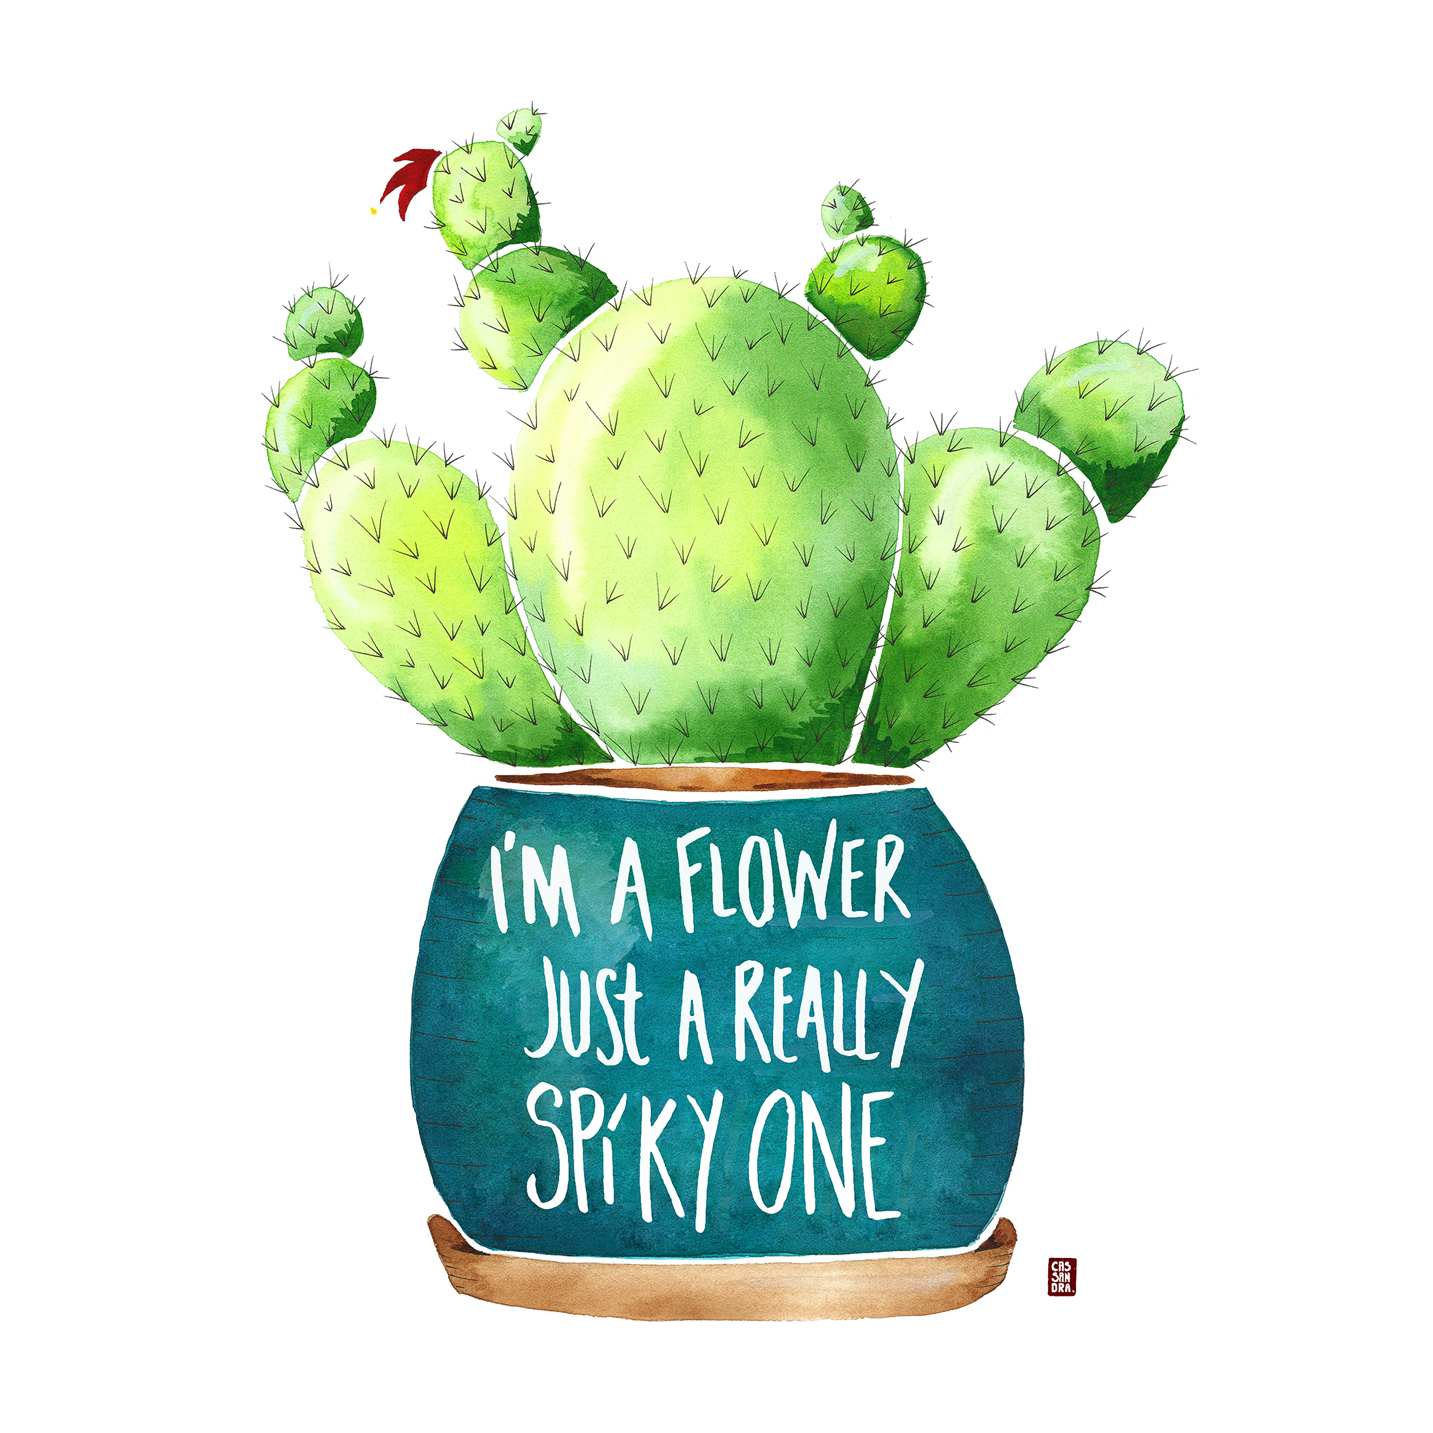 I'm a flower just a really spiky one!